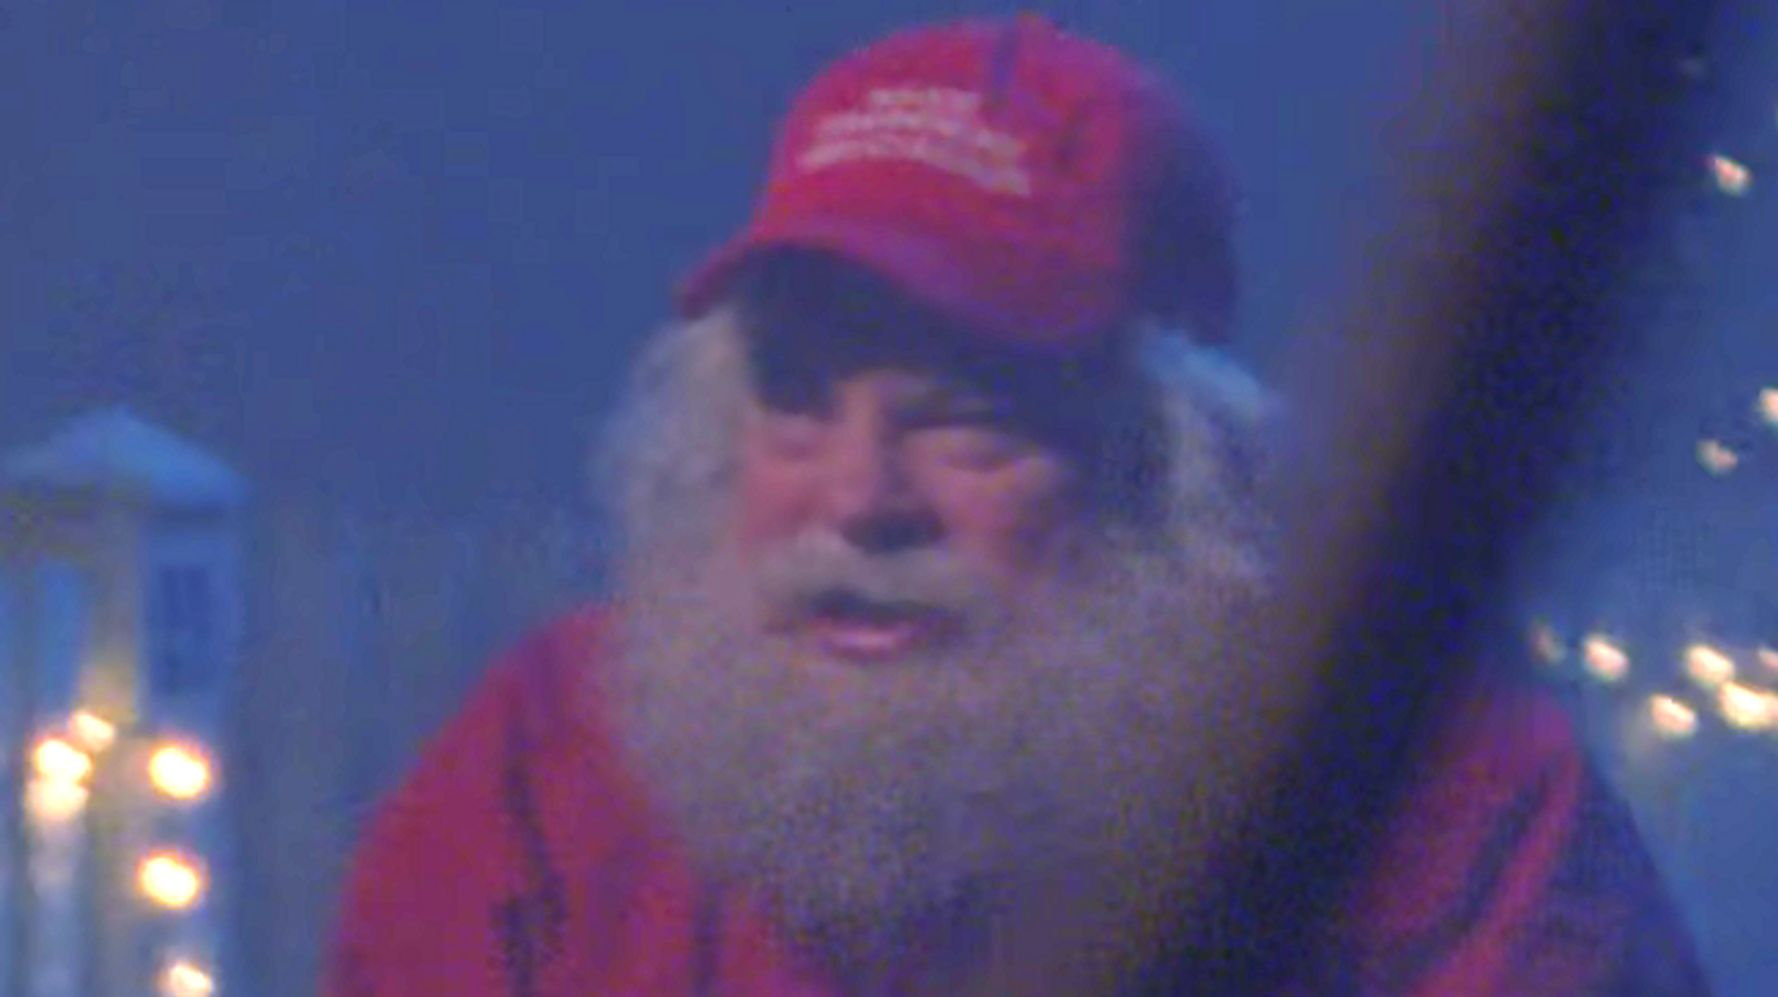 Santa Claus Is Basically Donald Trump In This Holiday Ad